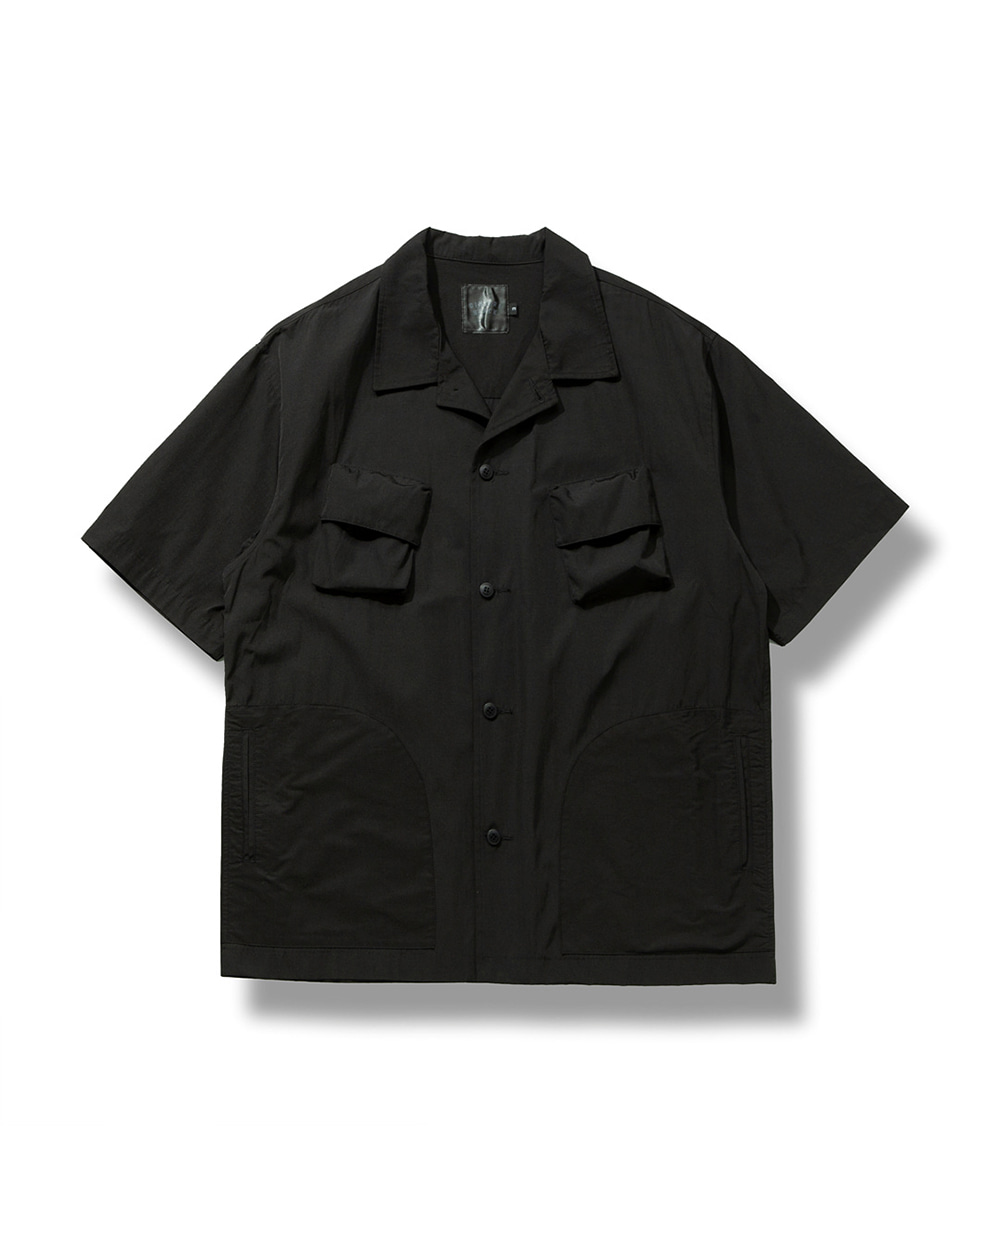 C/P FATIGUE SHIRTS BLACK